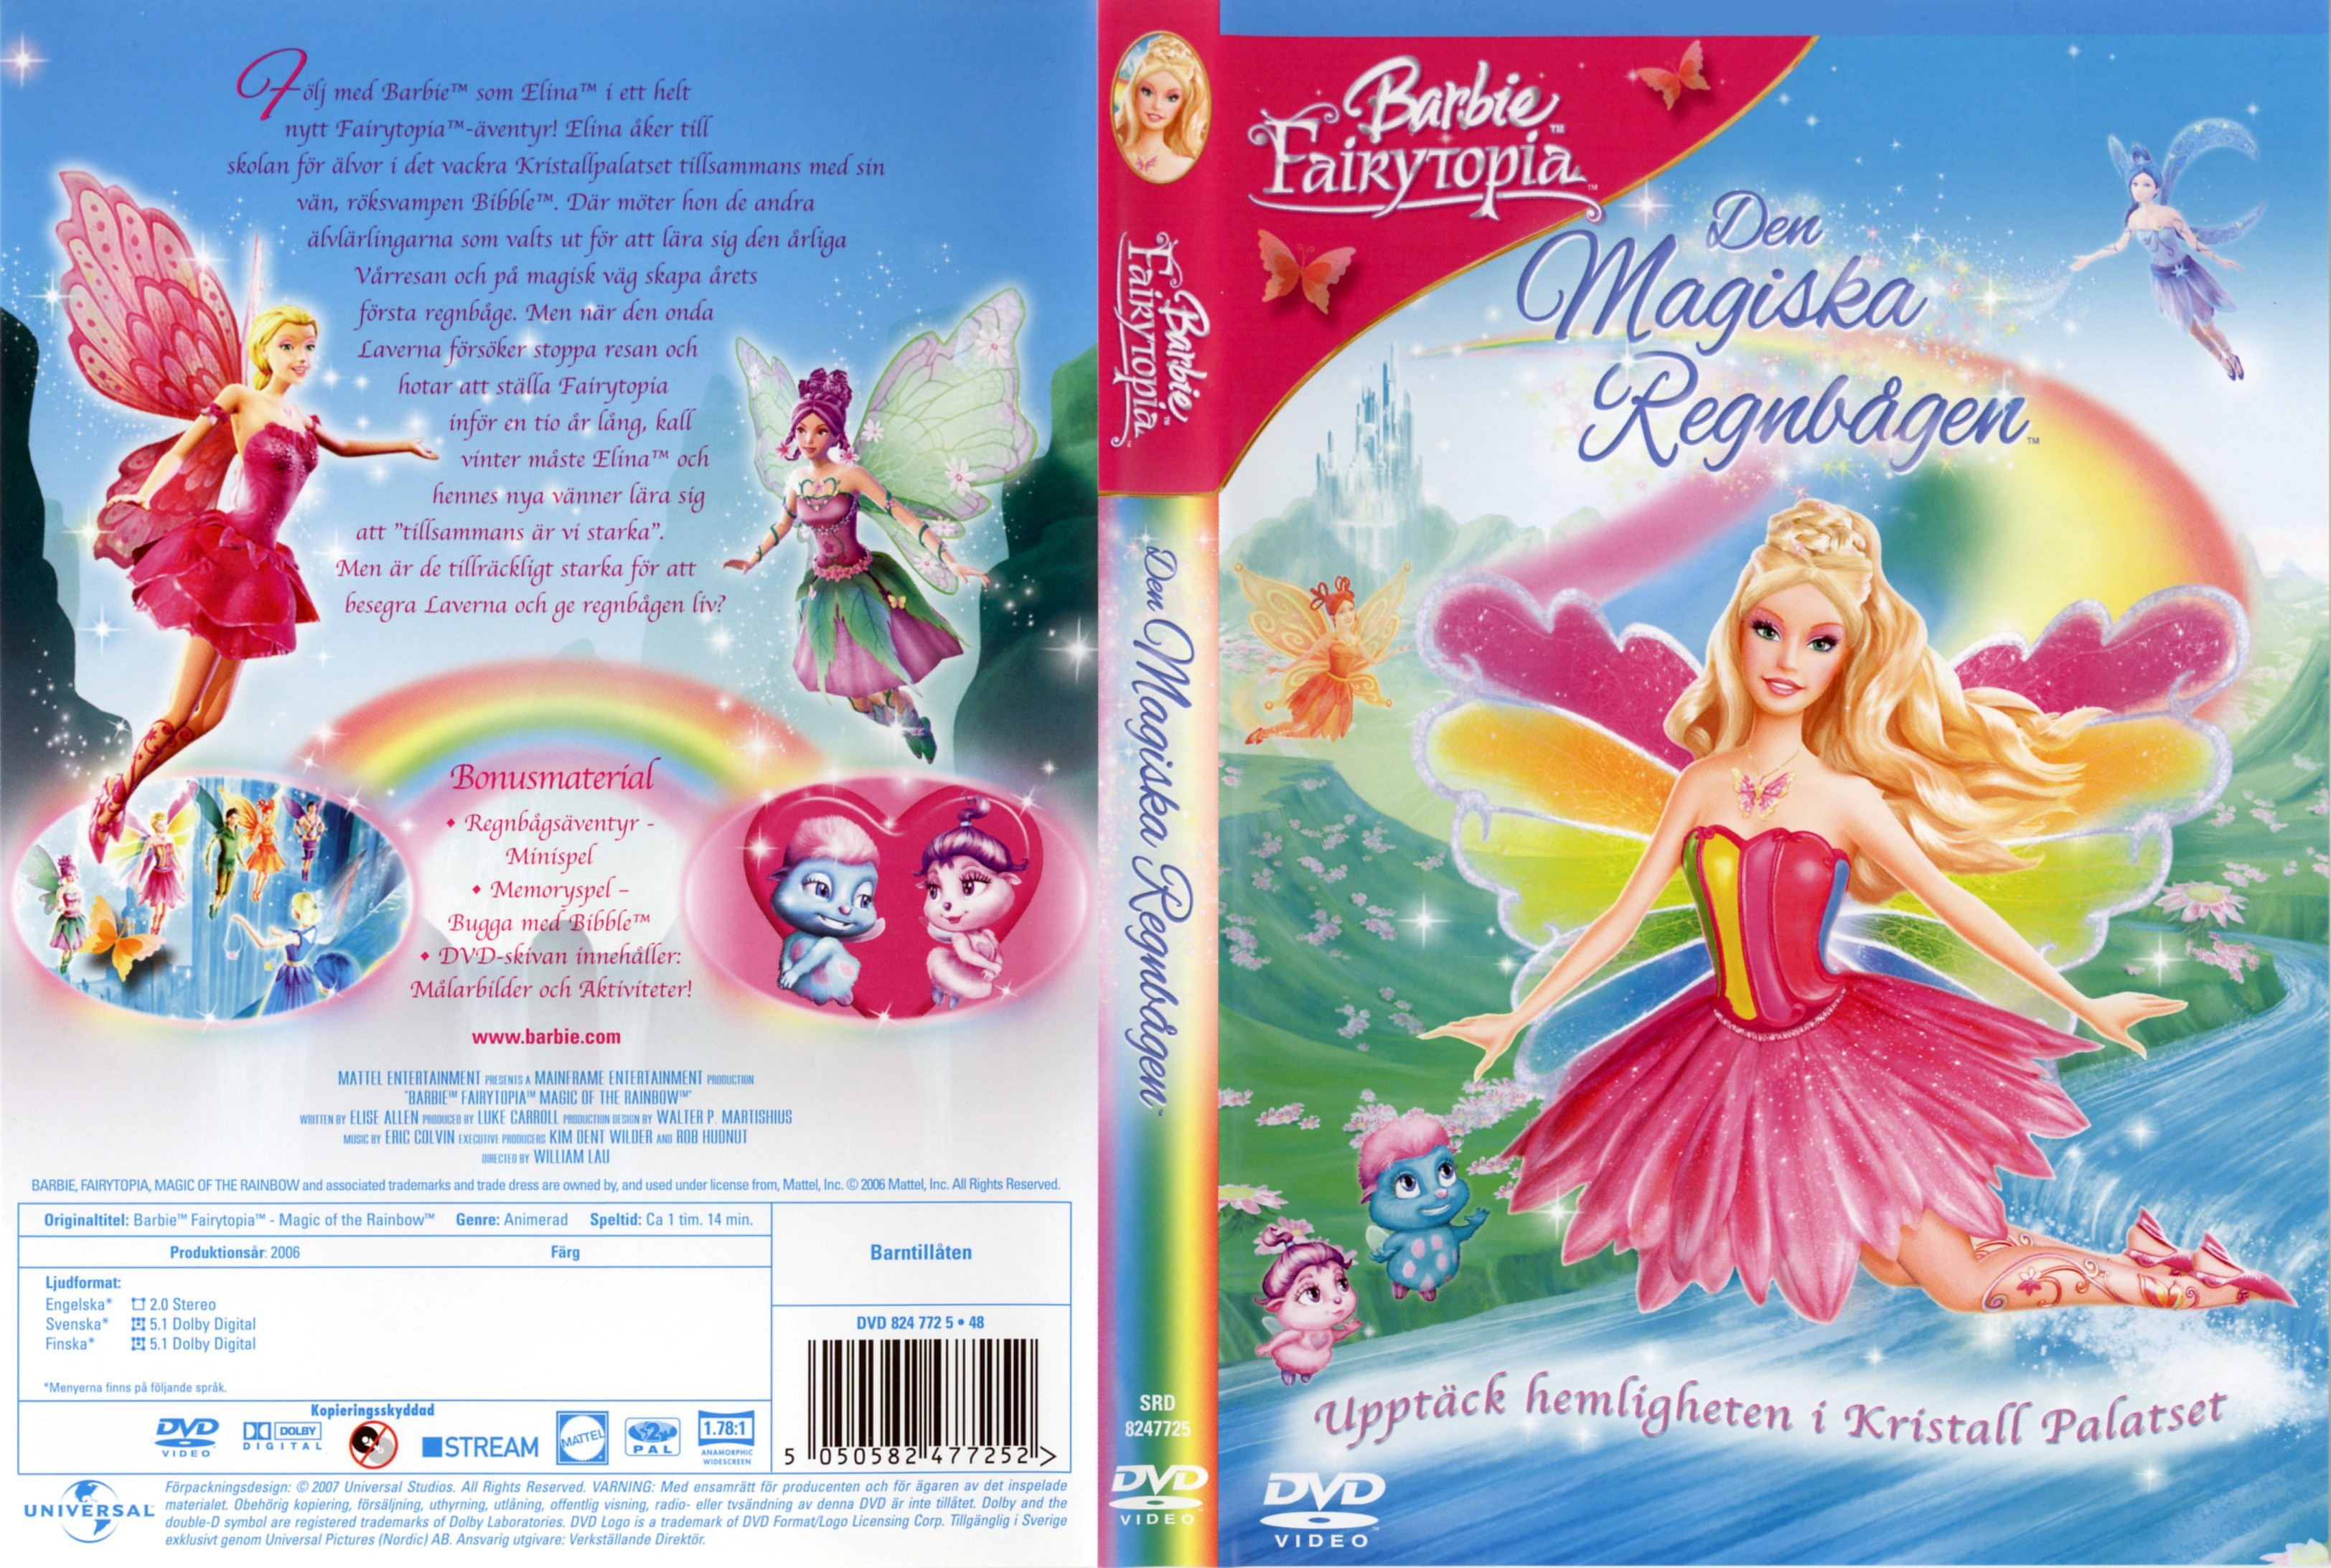 Barbie fairytopia magic of the rainbow dvd